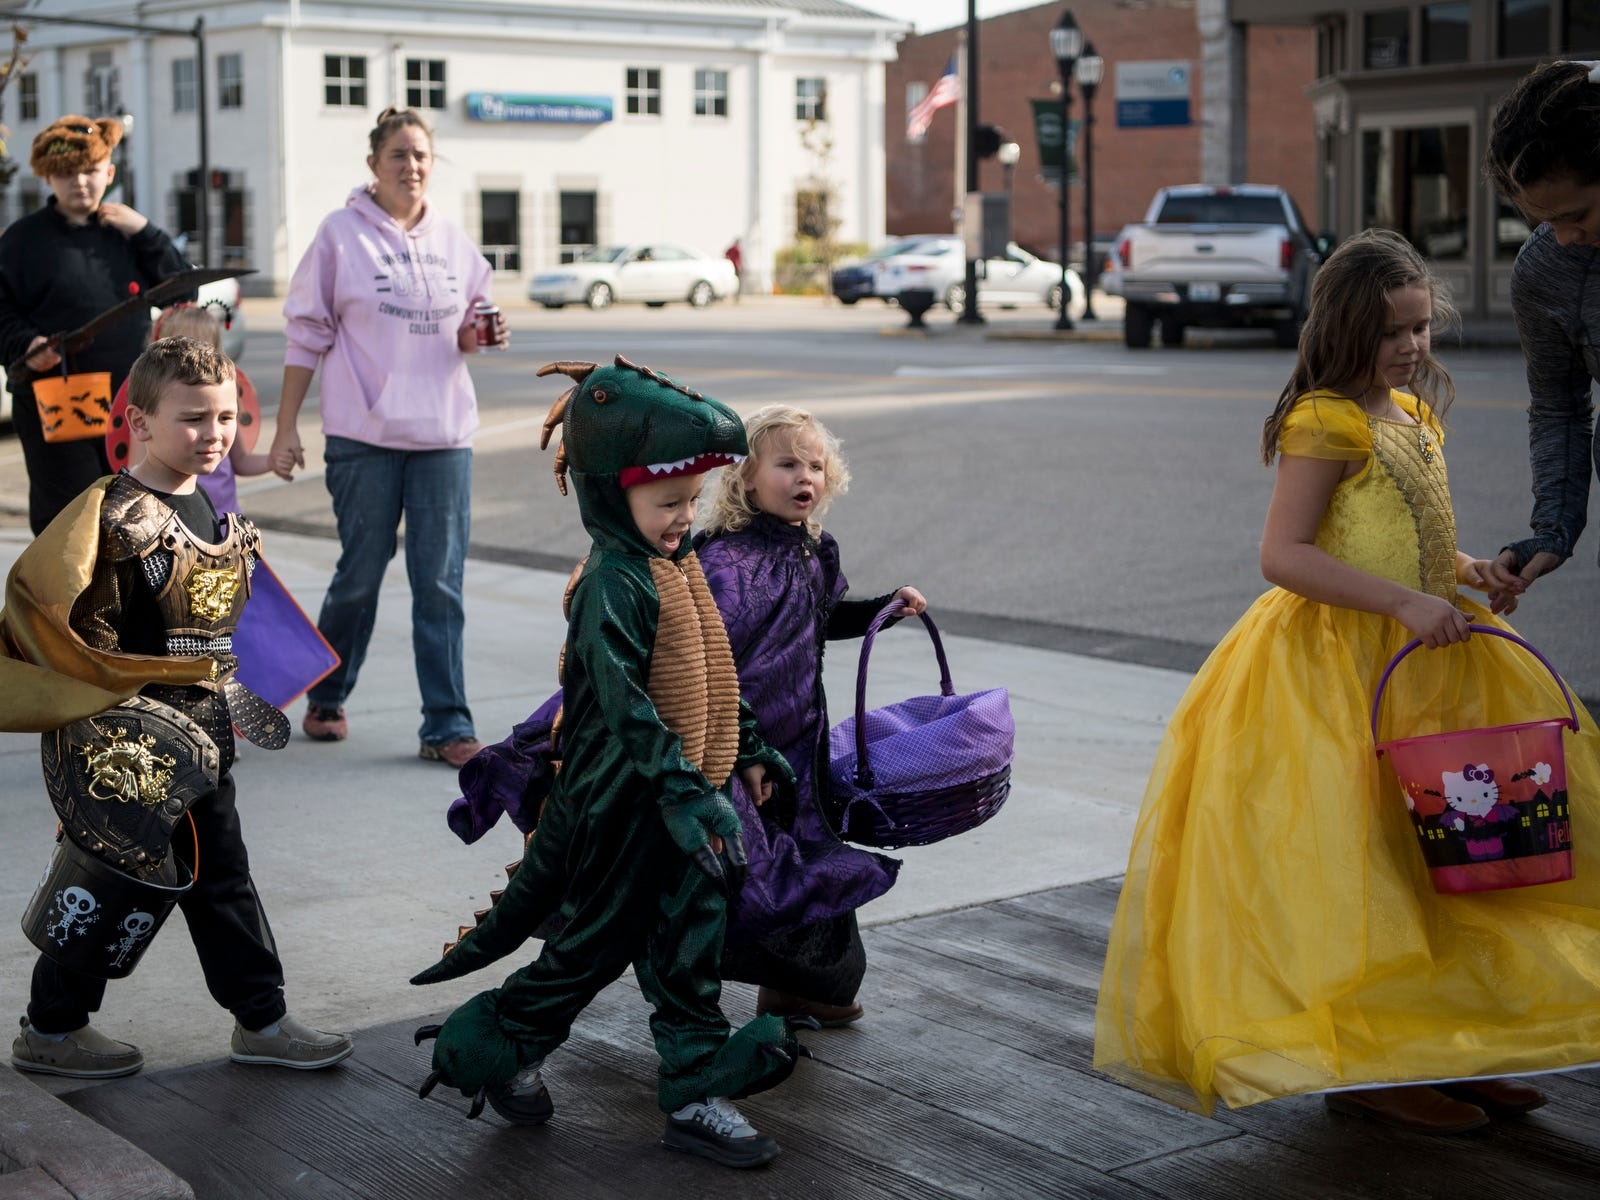 Children walk down Second Street during the Central Business District trick-or-treat event in downtown Henderson, Ky., Tuesday, Oct. 30, 2018. Due to a forecast calling for significant rain on Halloween day, the Rotaract of Henderson moved it's Downtown Trick-Or-Treat event to Tuesday evening from 3-5 p.m.